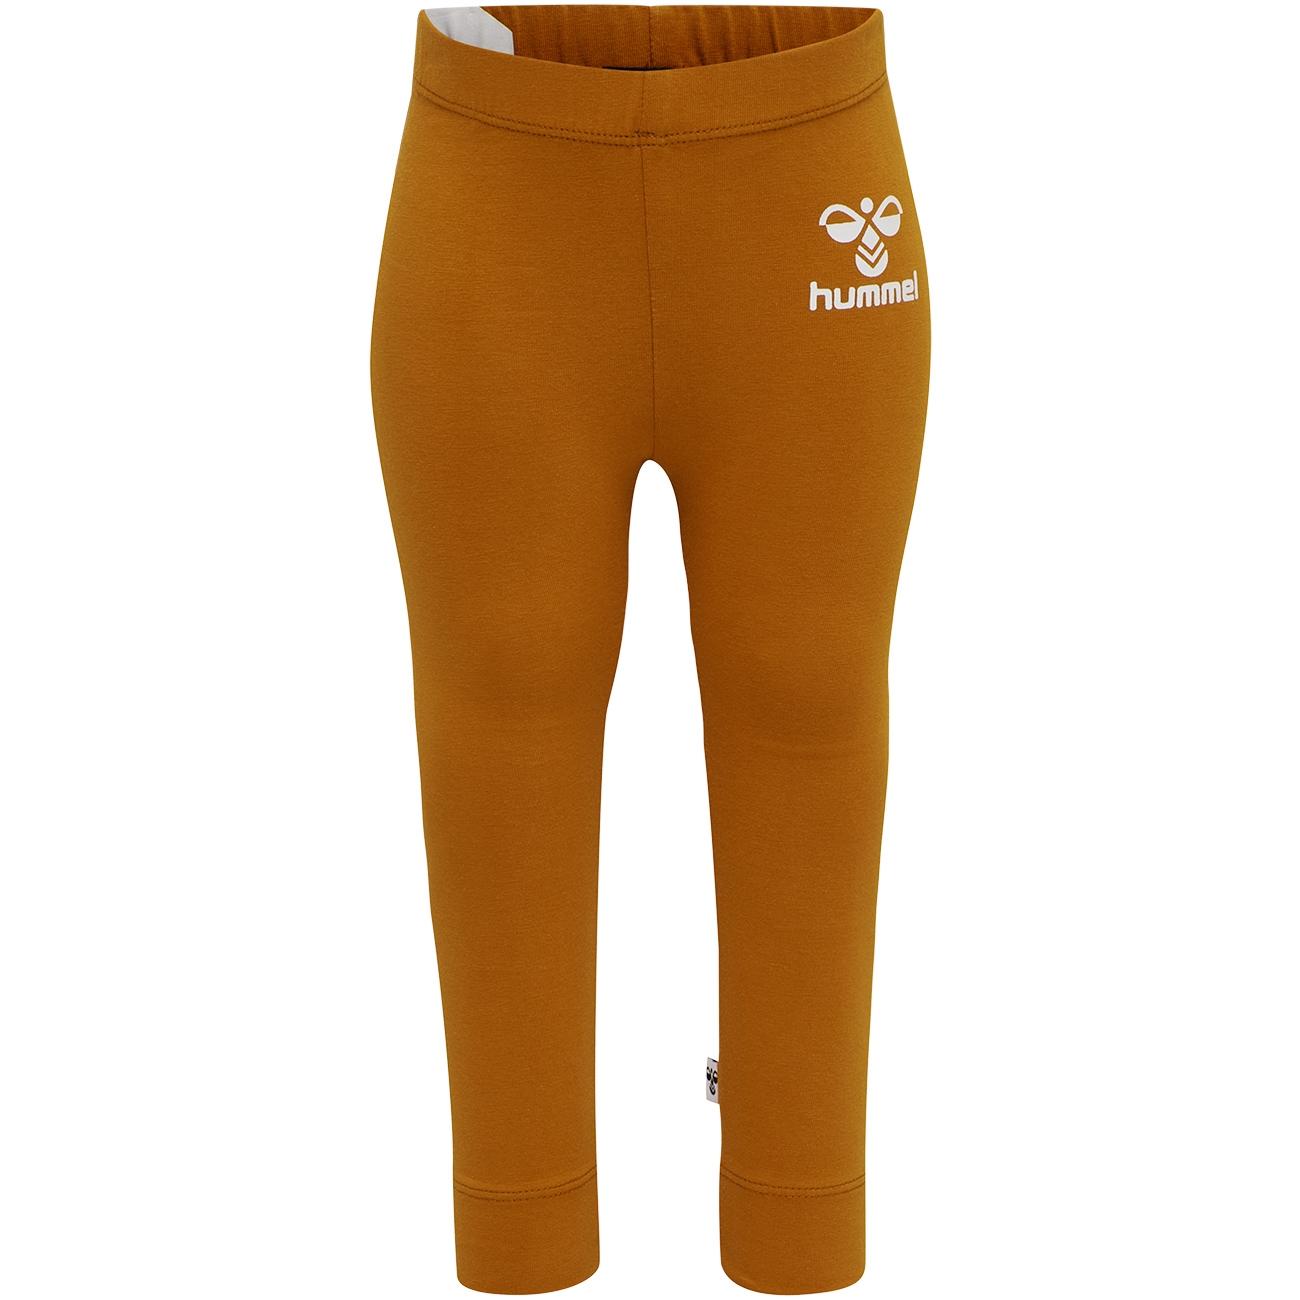 hummel-maui-tights-leggins-pumpkin-spice-girl-pige